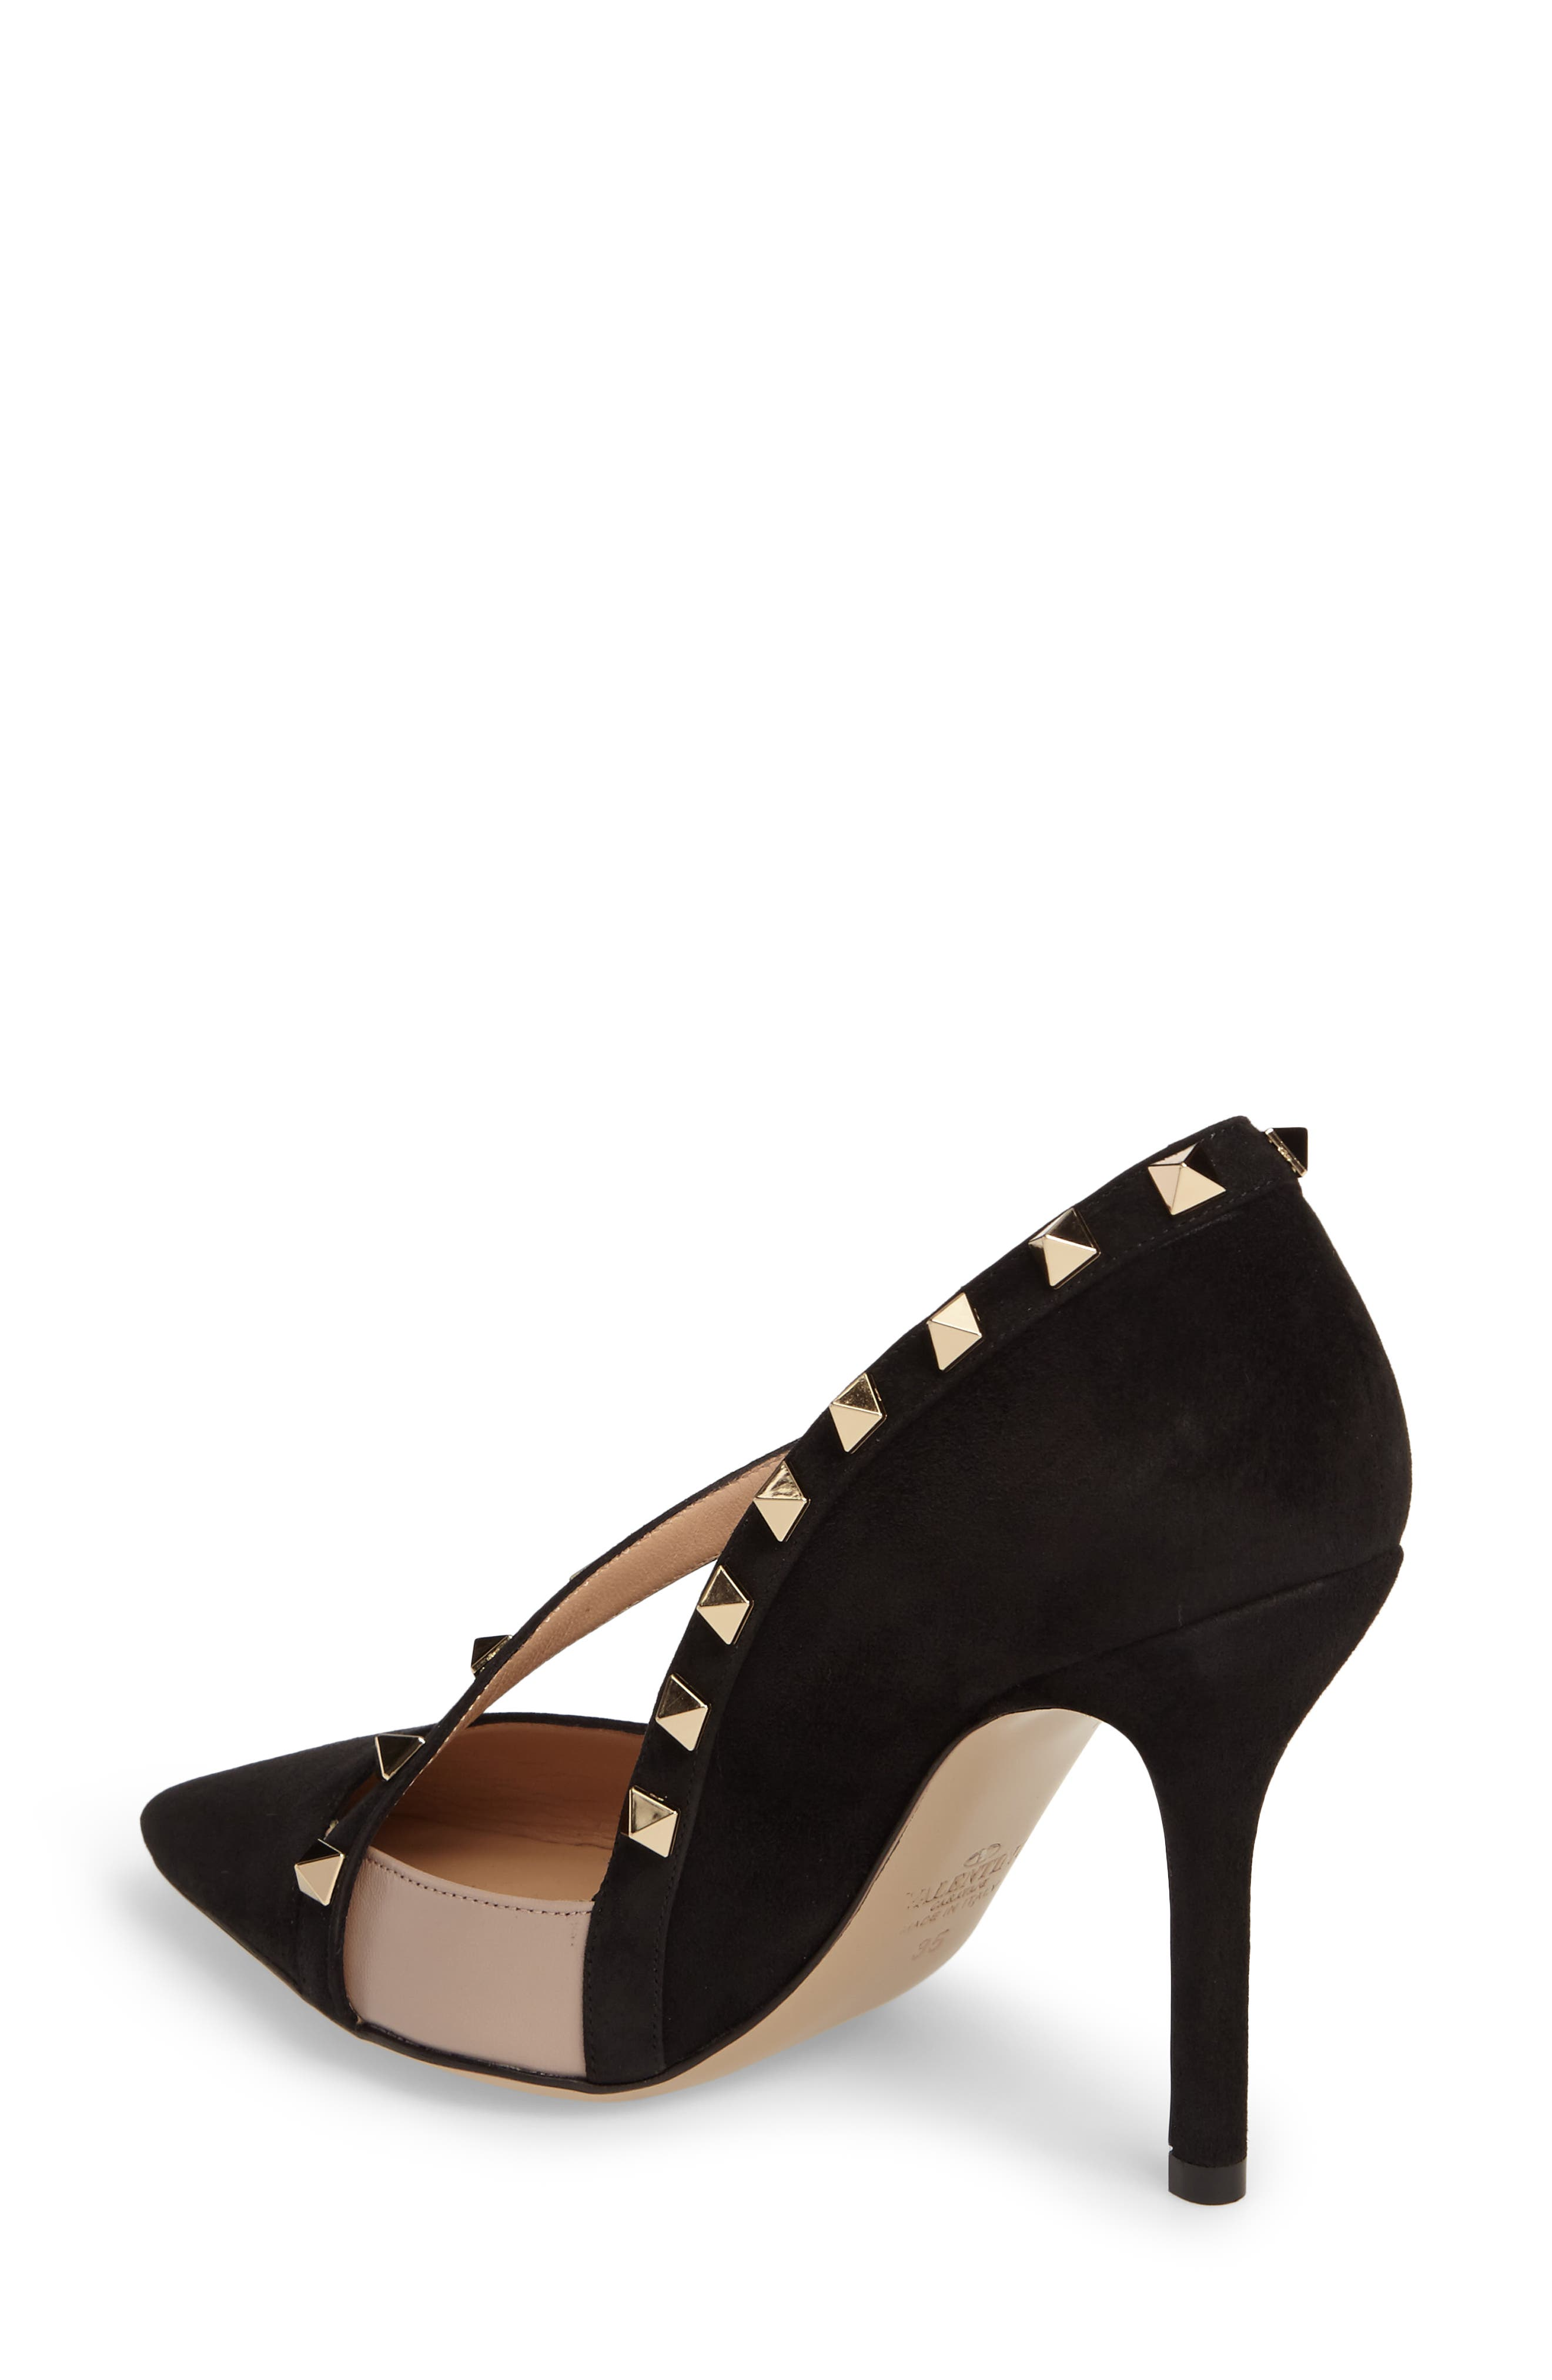 Rockstud d'Orsay Pump,                             Alternate thumbnail 2, color,                             Black Suede